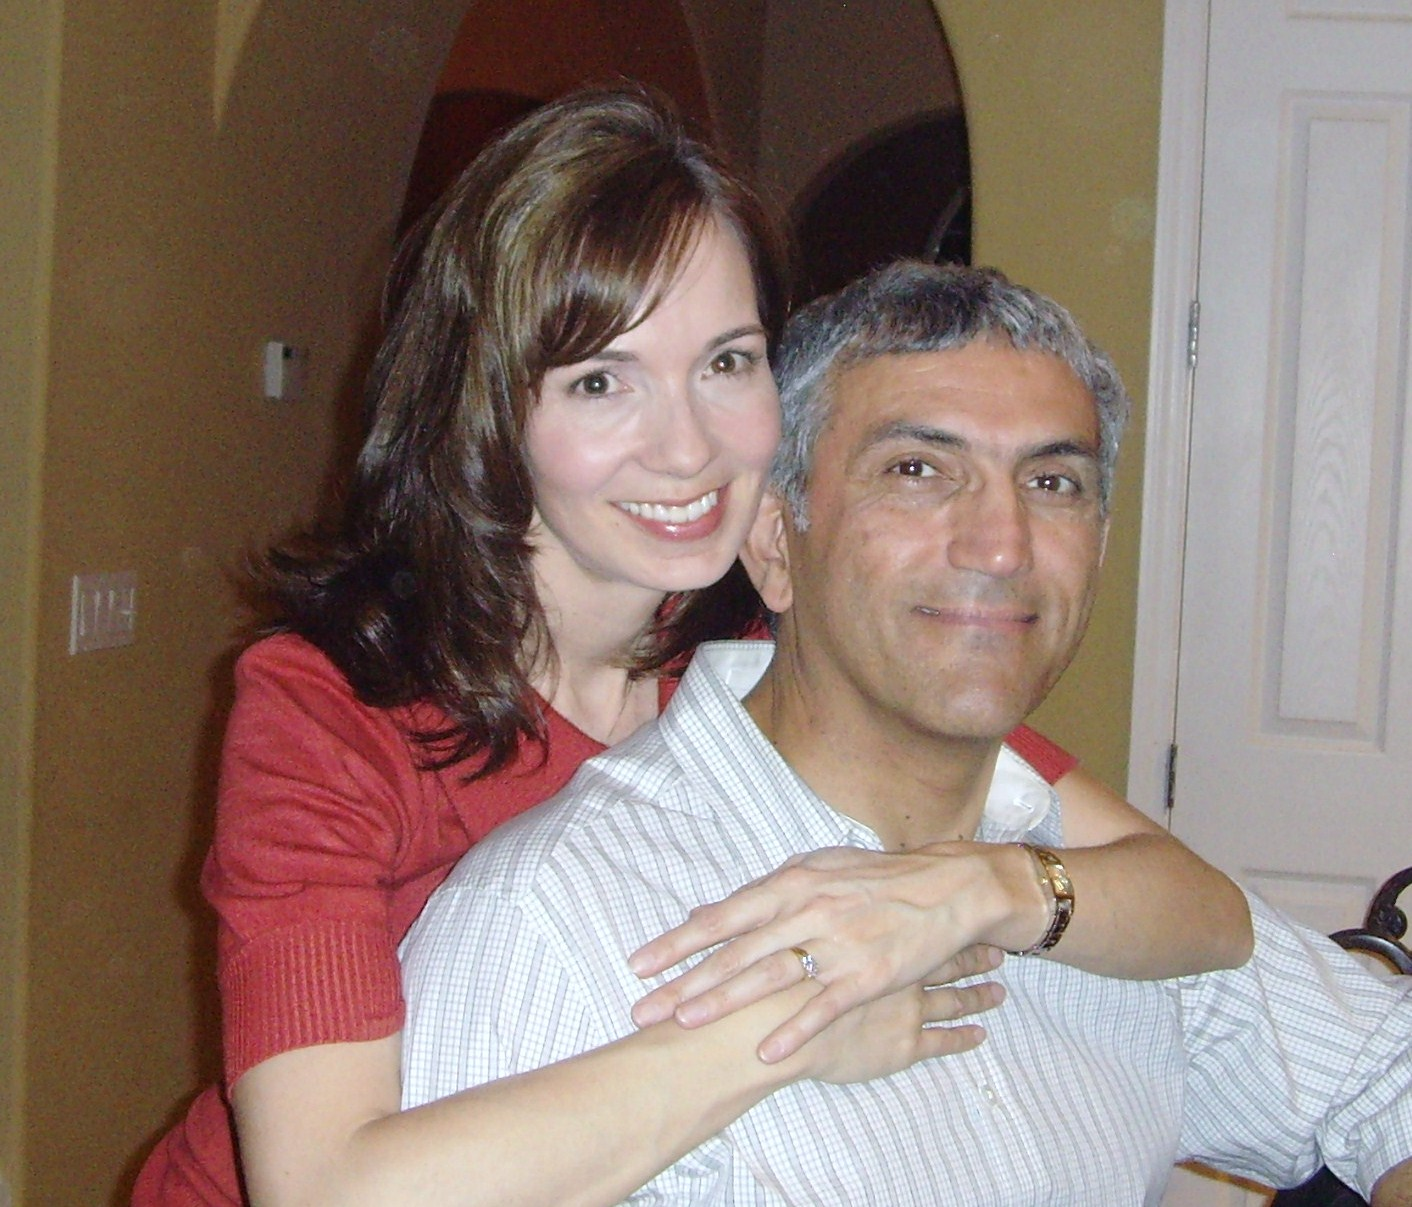 White and Iranian couple